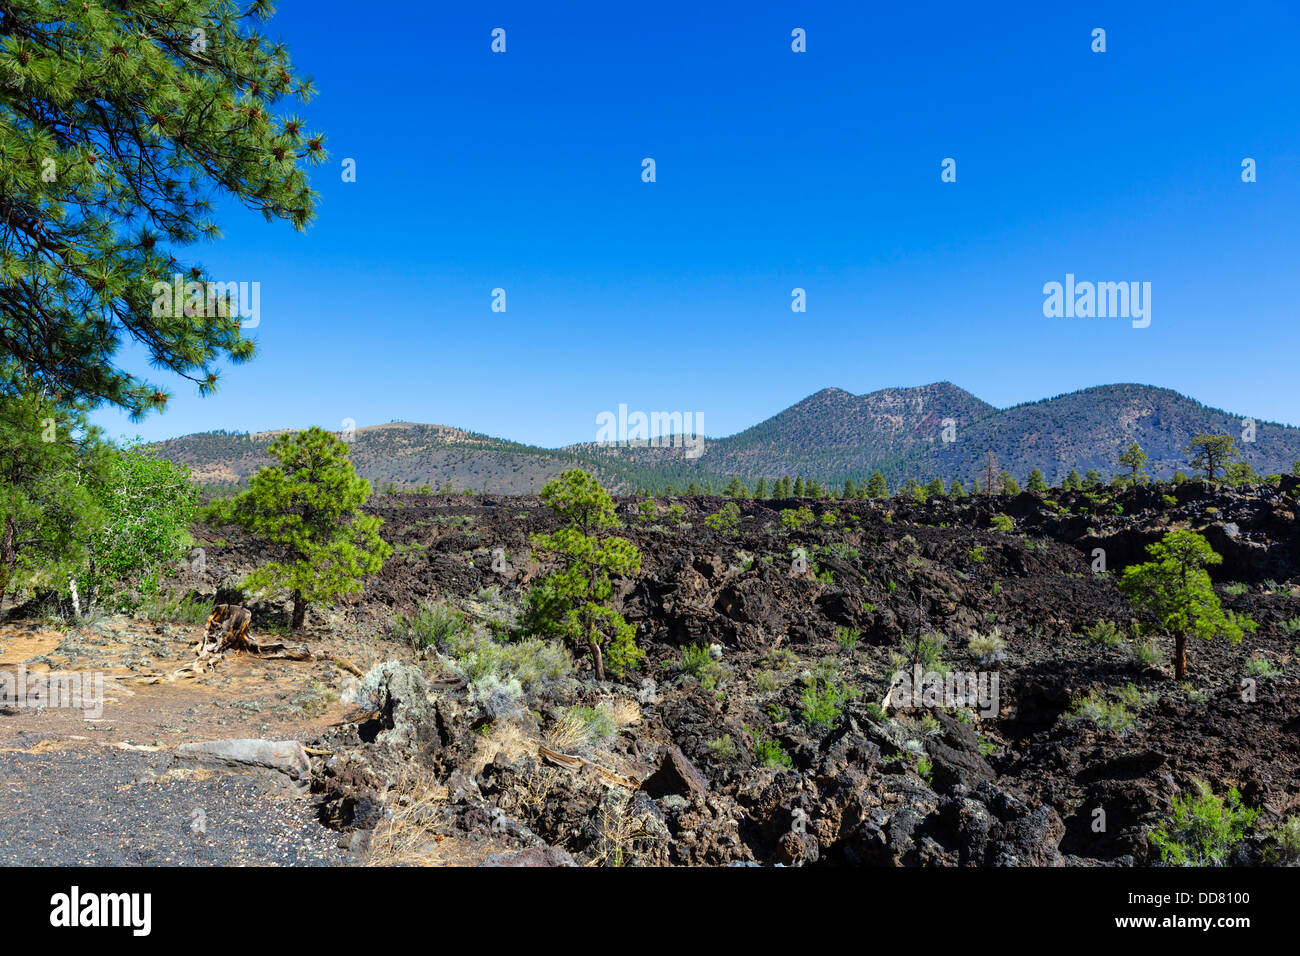 Viewpoint overlooking the Bonito Lava Flow, Sunset Crater Volcano National Monument, near Flagstaff, Arizona, USA - Stock Image